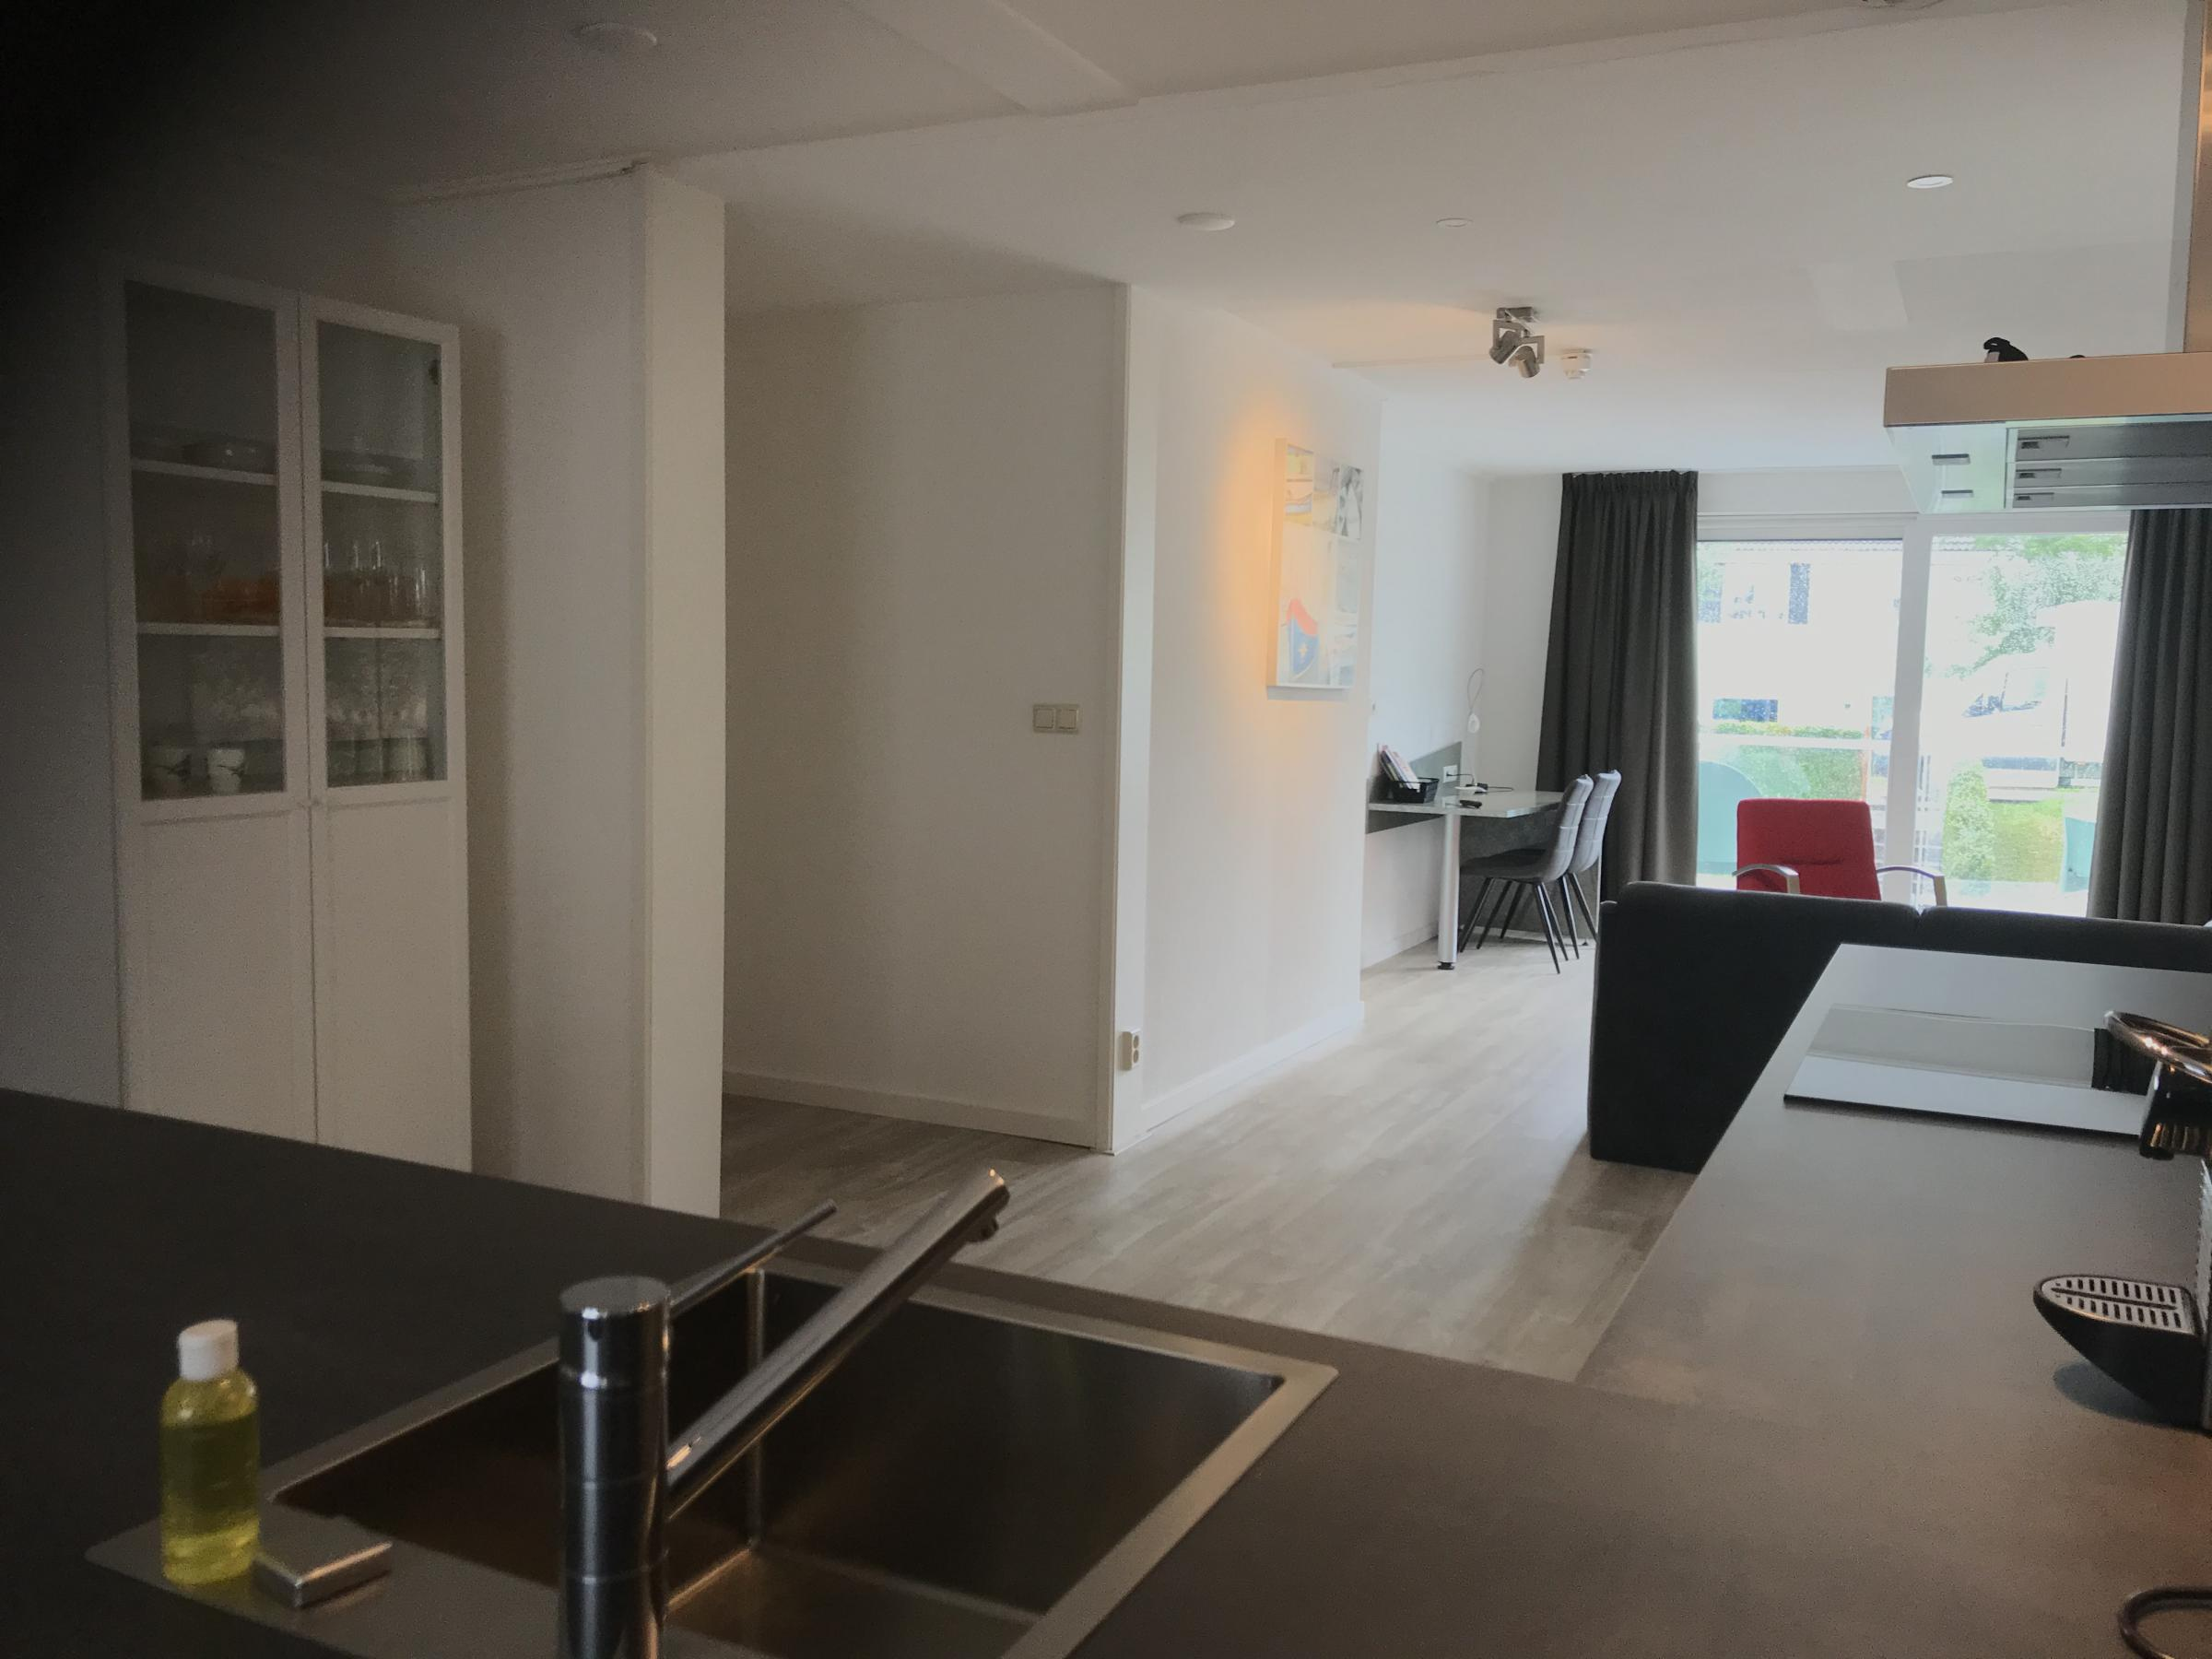 Apartment Deluxe Comfort Veerse meer - 4 persons